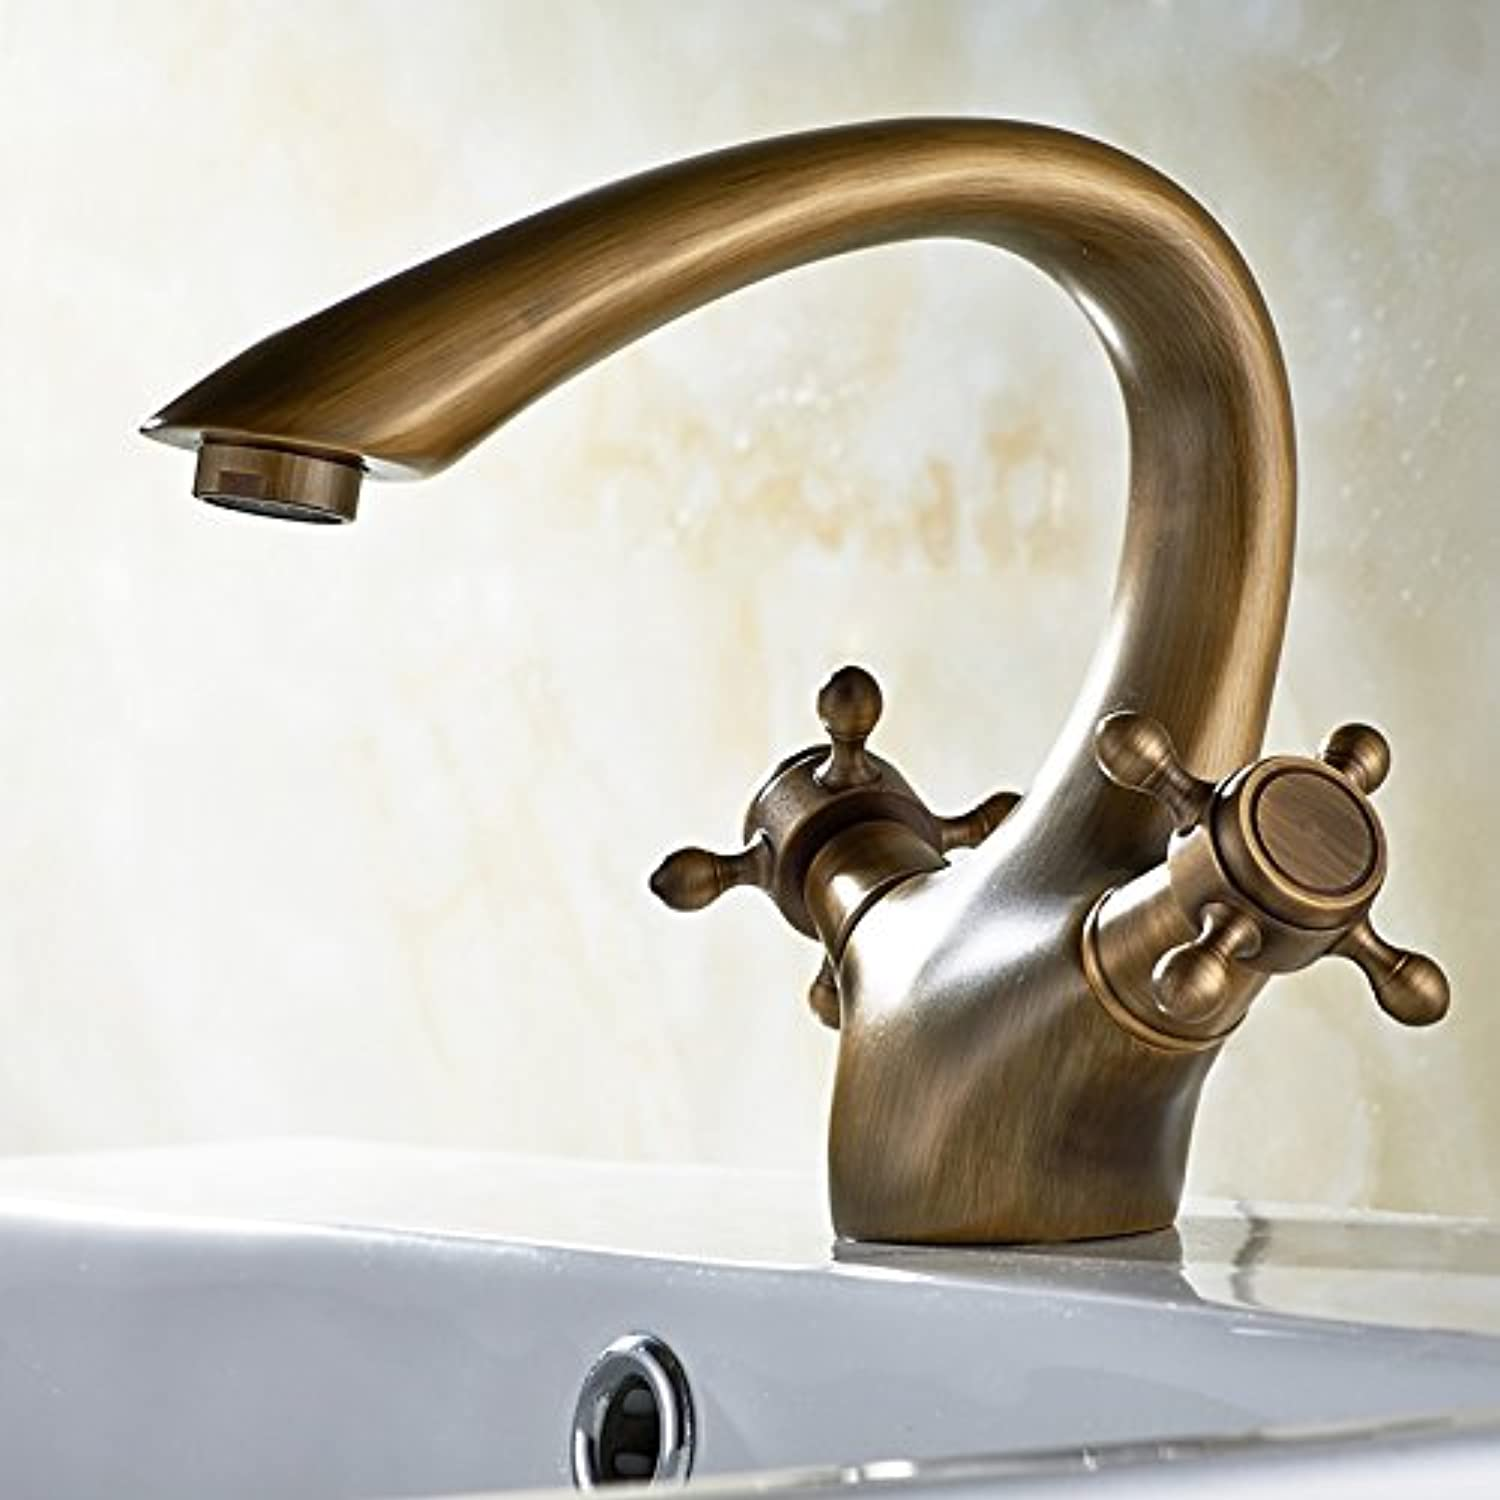 LHbox Basin Mixer Tap Bathroom Sink Faucet The brass taps, basin single hole antique faucet, toilet and wash basin basin cold water tap.